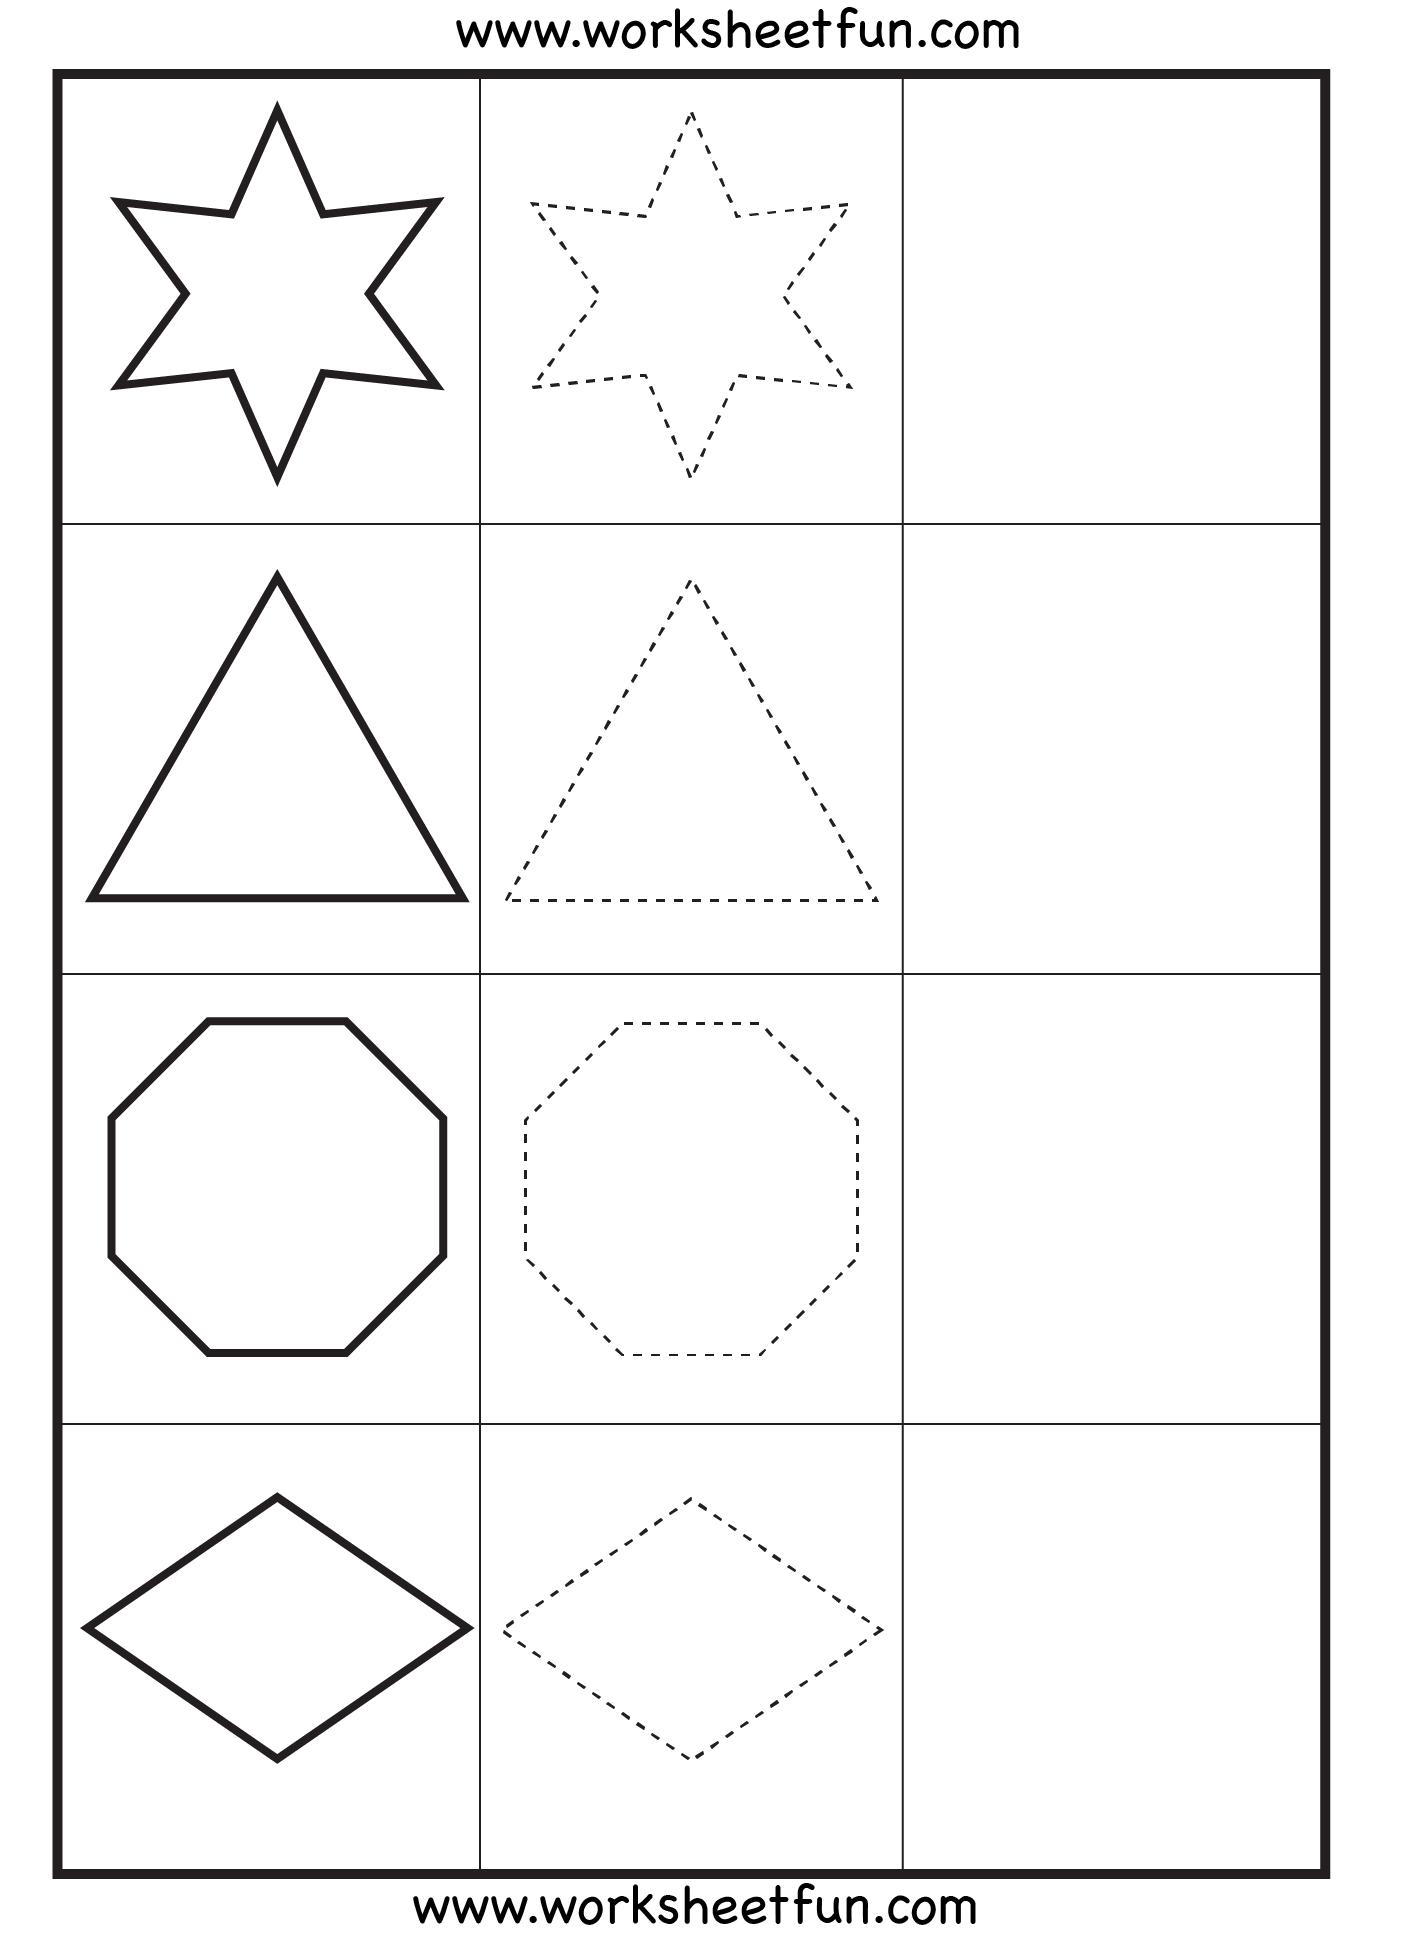 worksheet Identifying Shapes Worksheets pre k learning christmas colors worksheets google search search